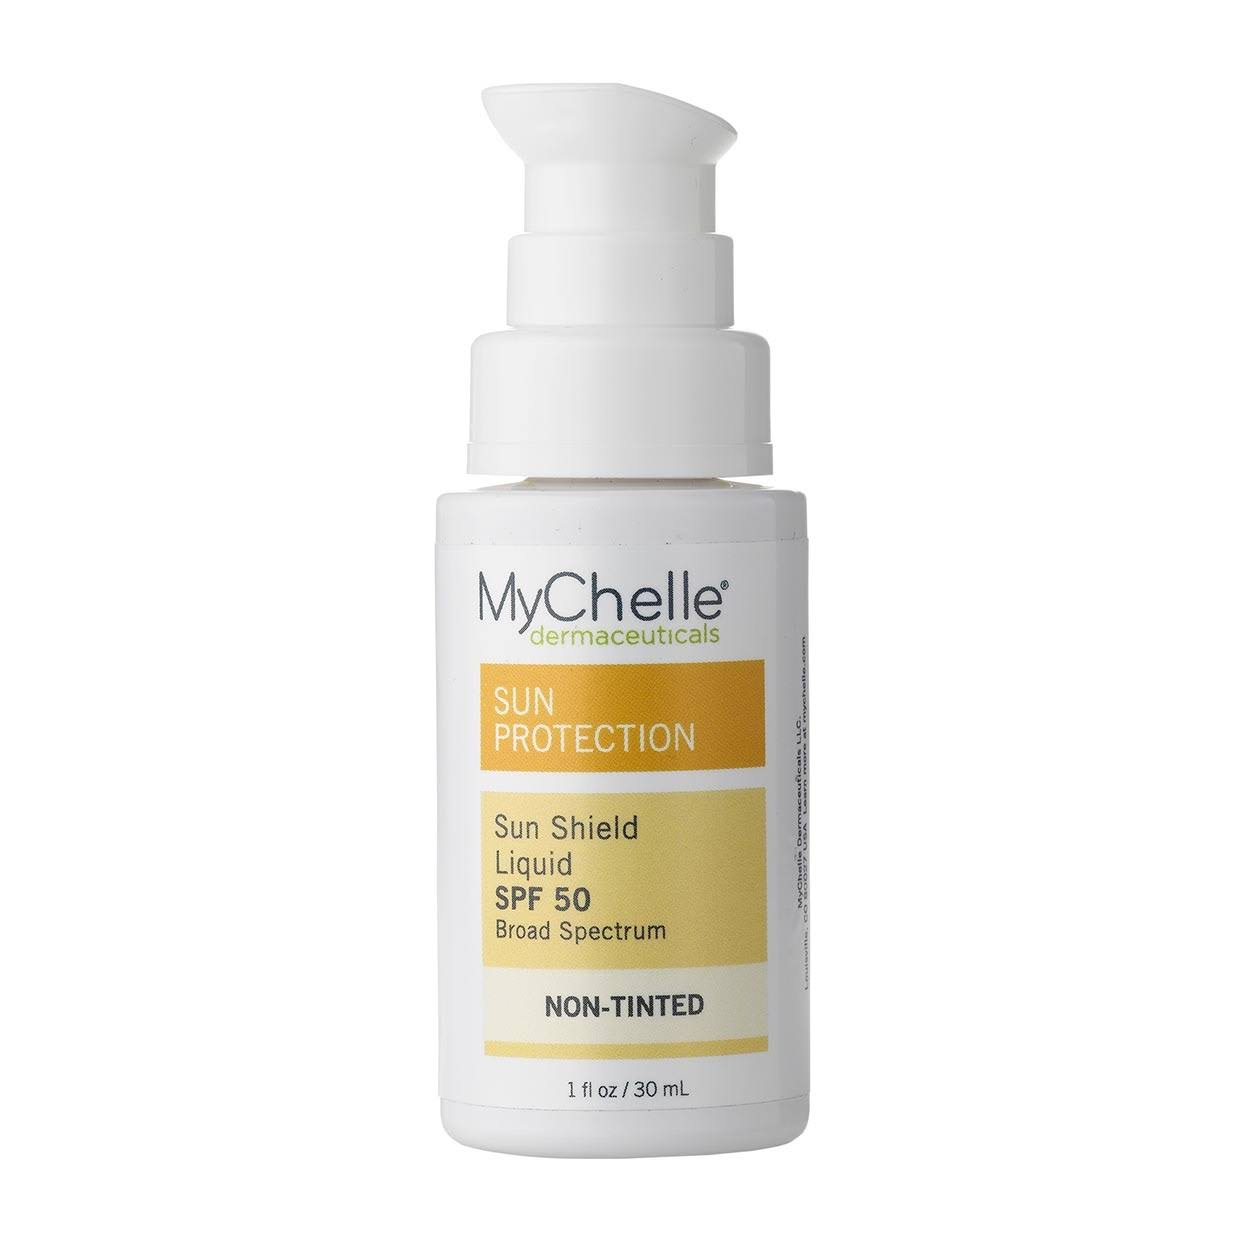 MyChelle Dermaceuticals Sun Shield Liquid - SPF 50, 30ml